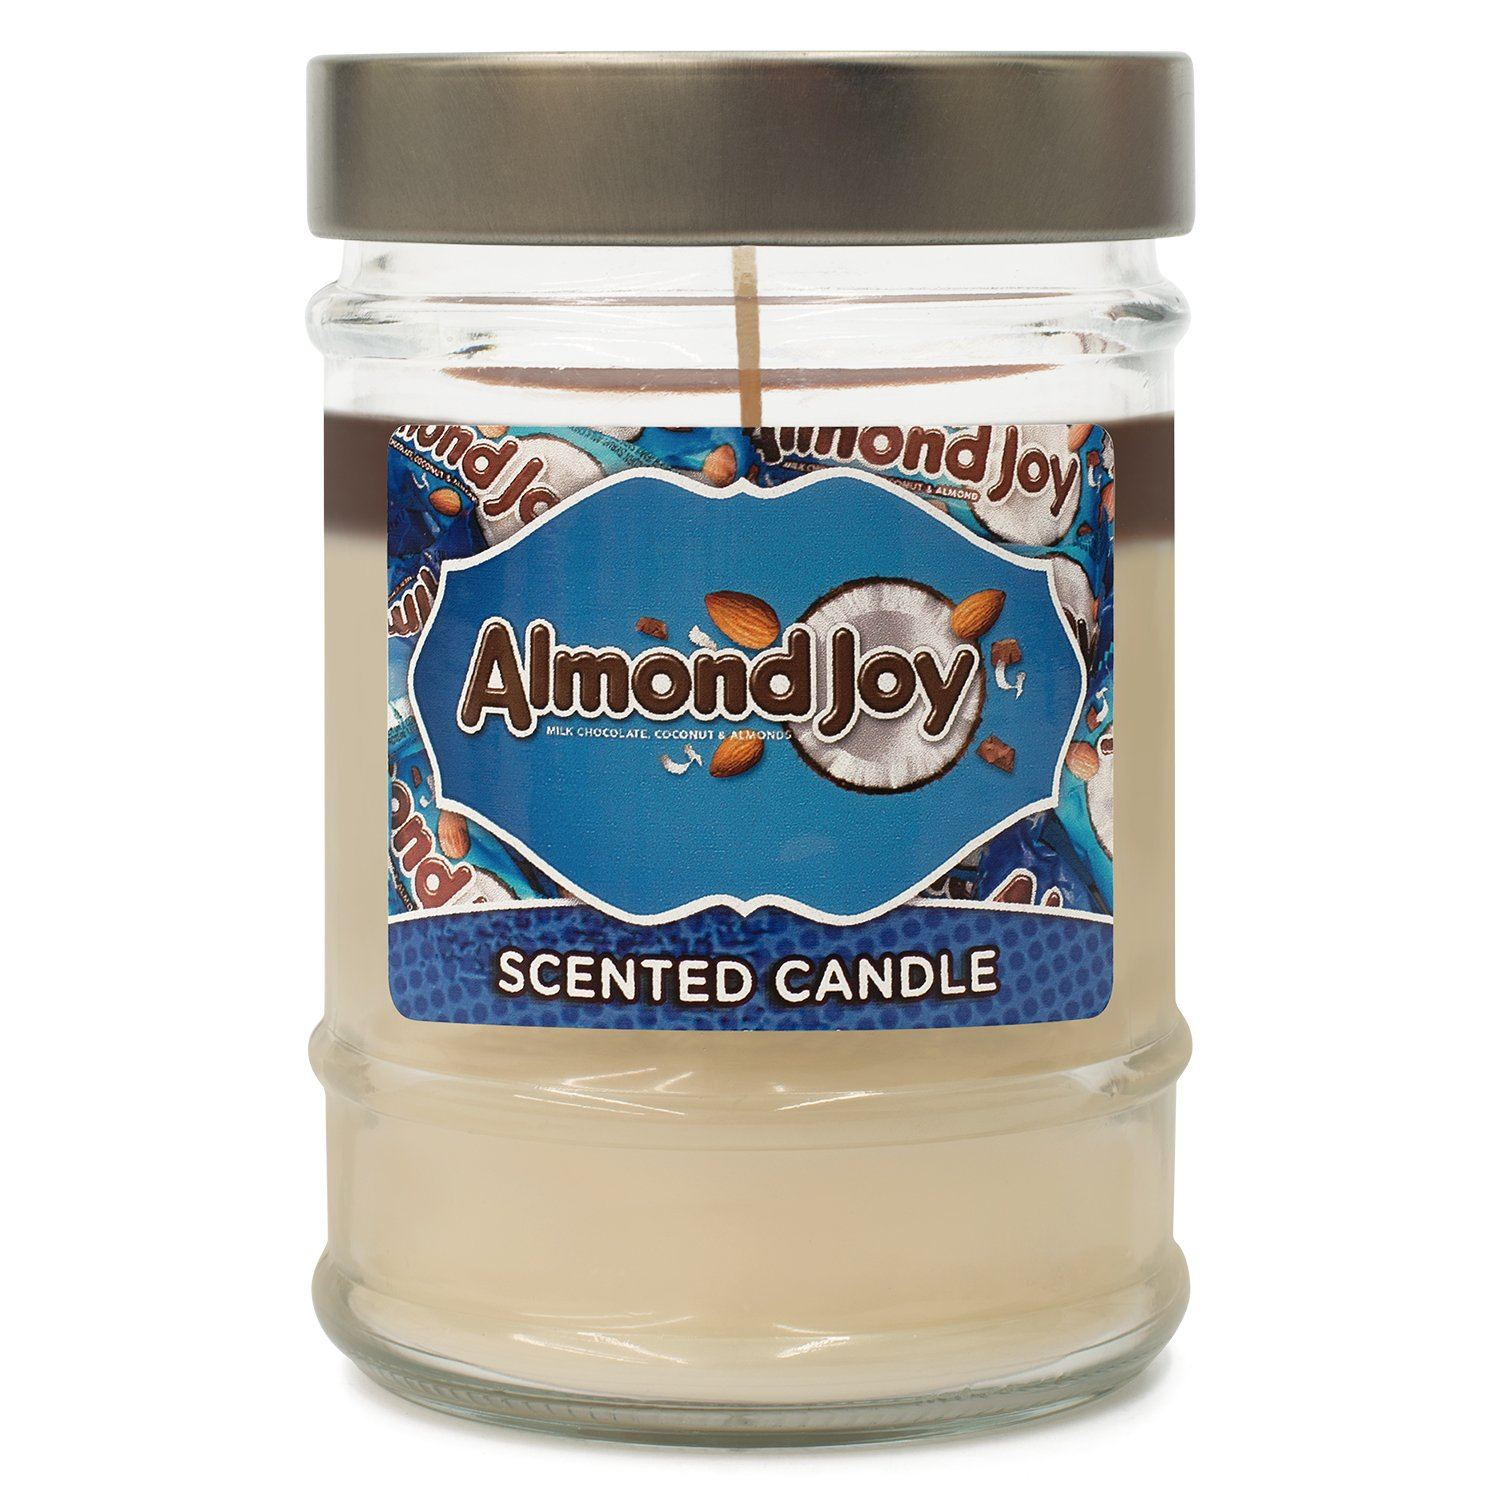 HERSHEY'S Almond Joy Scented Canister Jar Candle-SECONDS Candles Candlemart.com $ 5.99